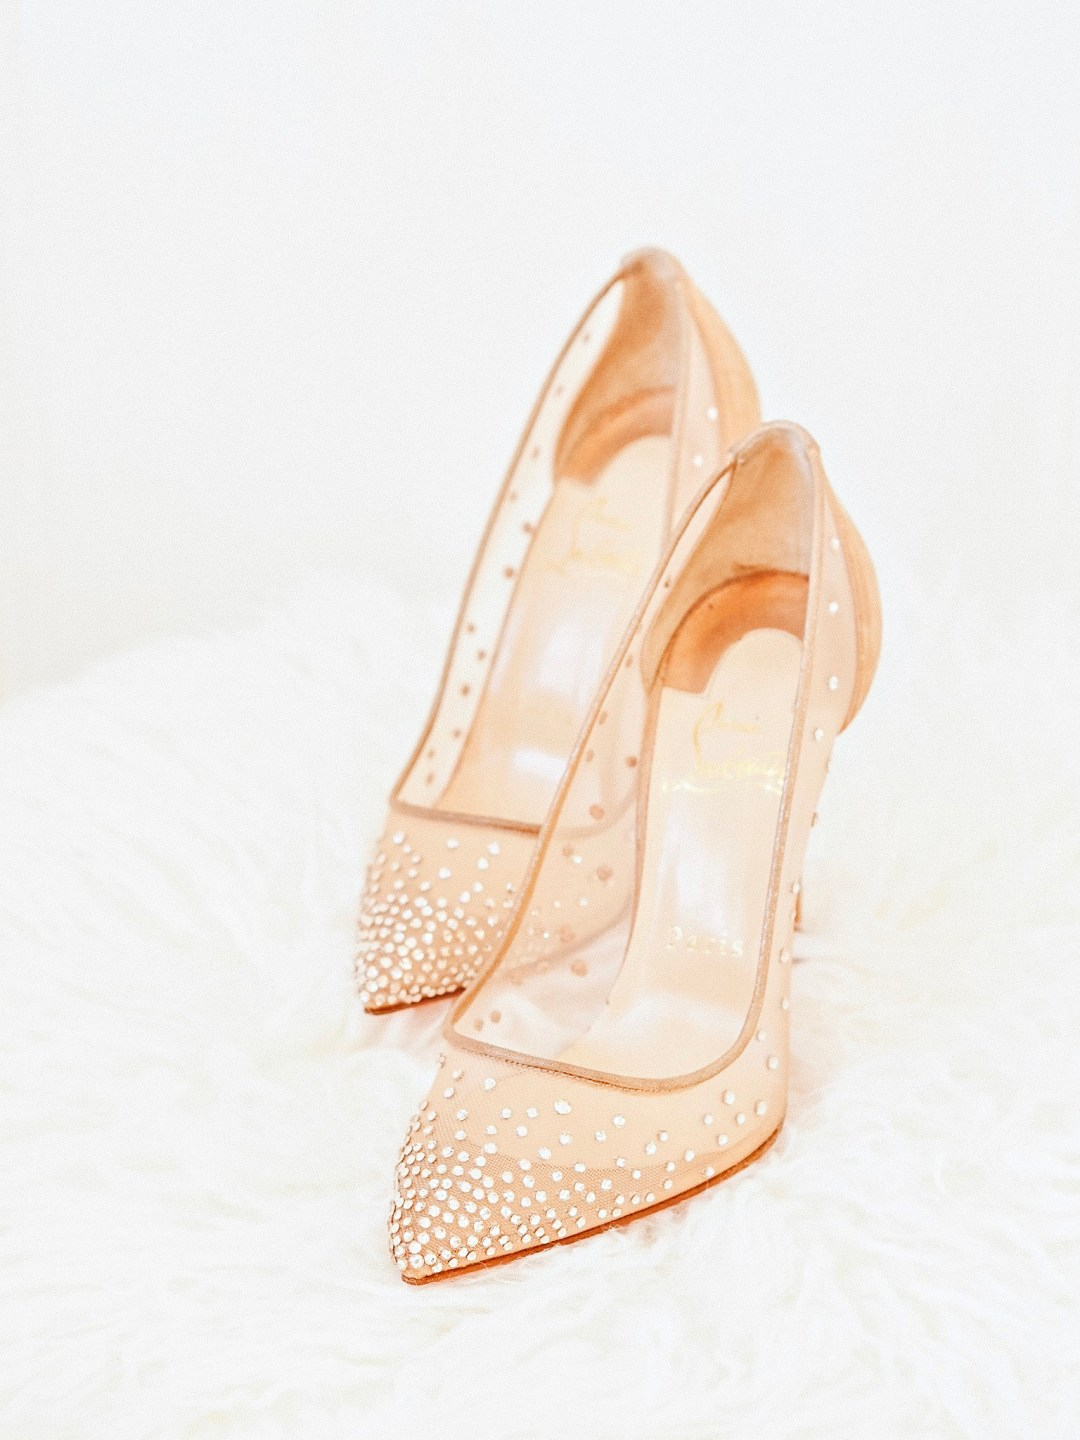 Christian Louboutin Follies Strass Rete/Suede Lame 100 mm Bridal Wedding Shoes